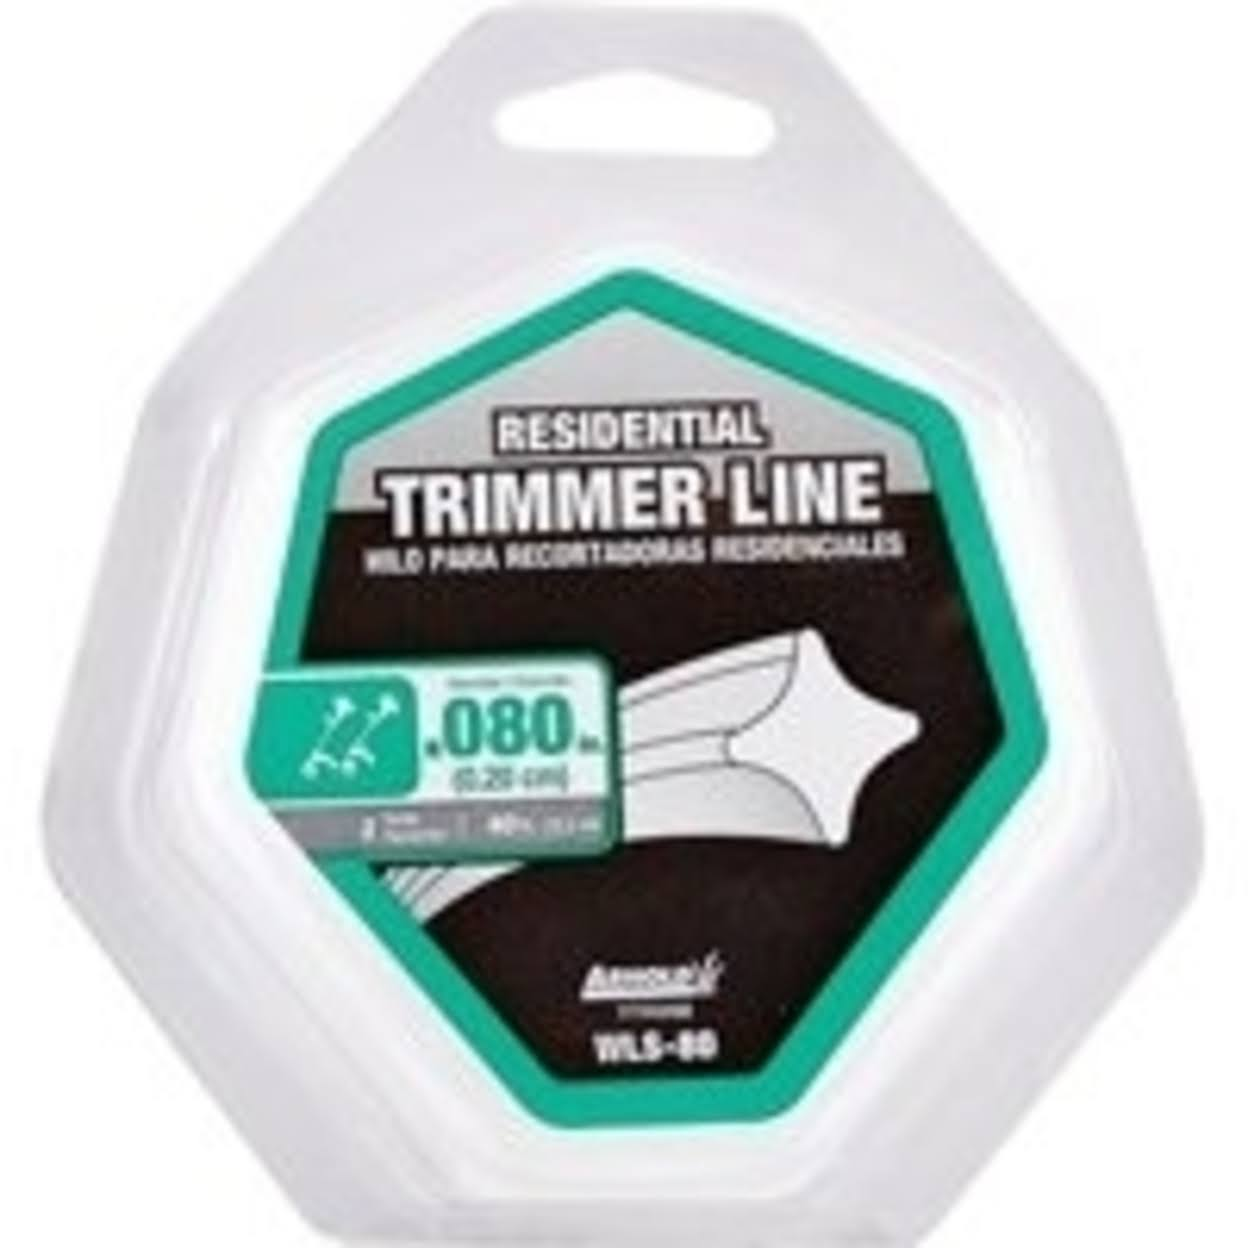 Arnold Trimline .08-Inch x 40-Foot Residential Grade Trimmer Line